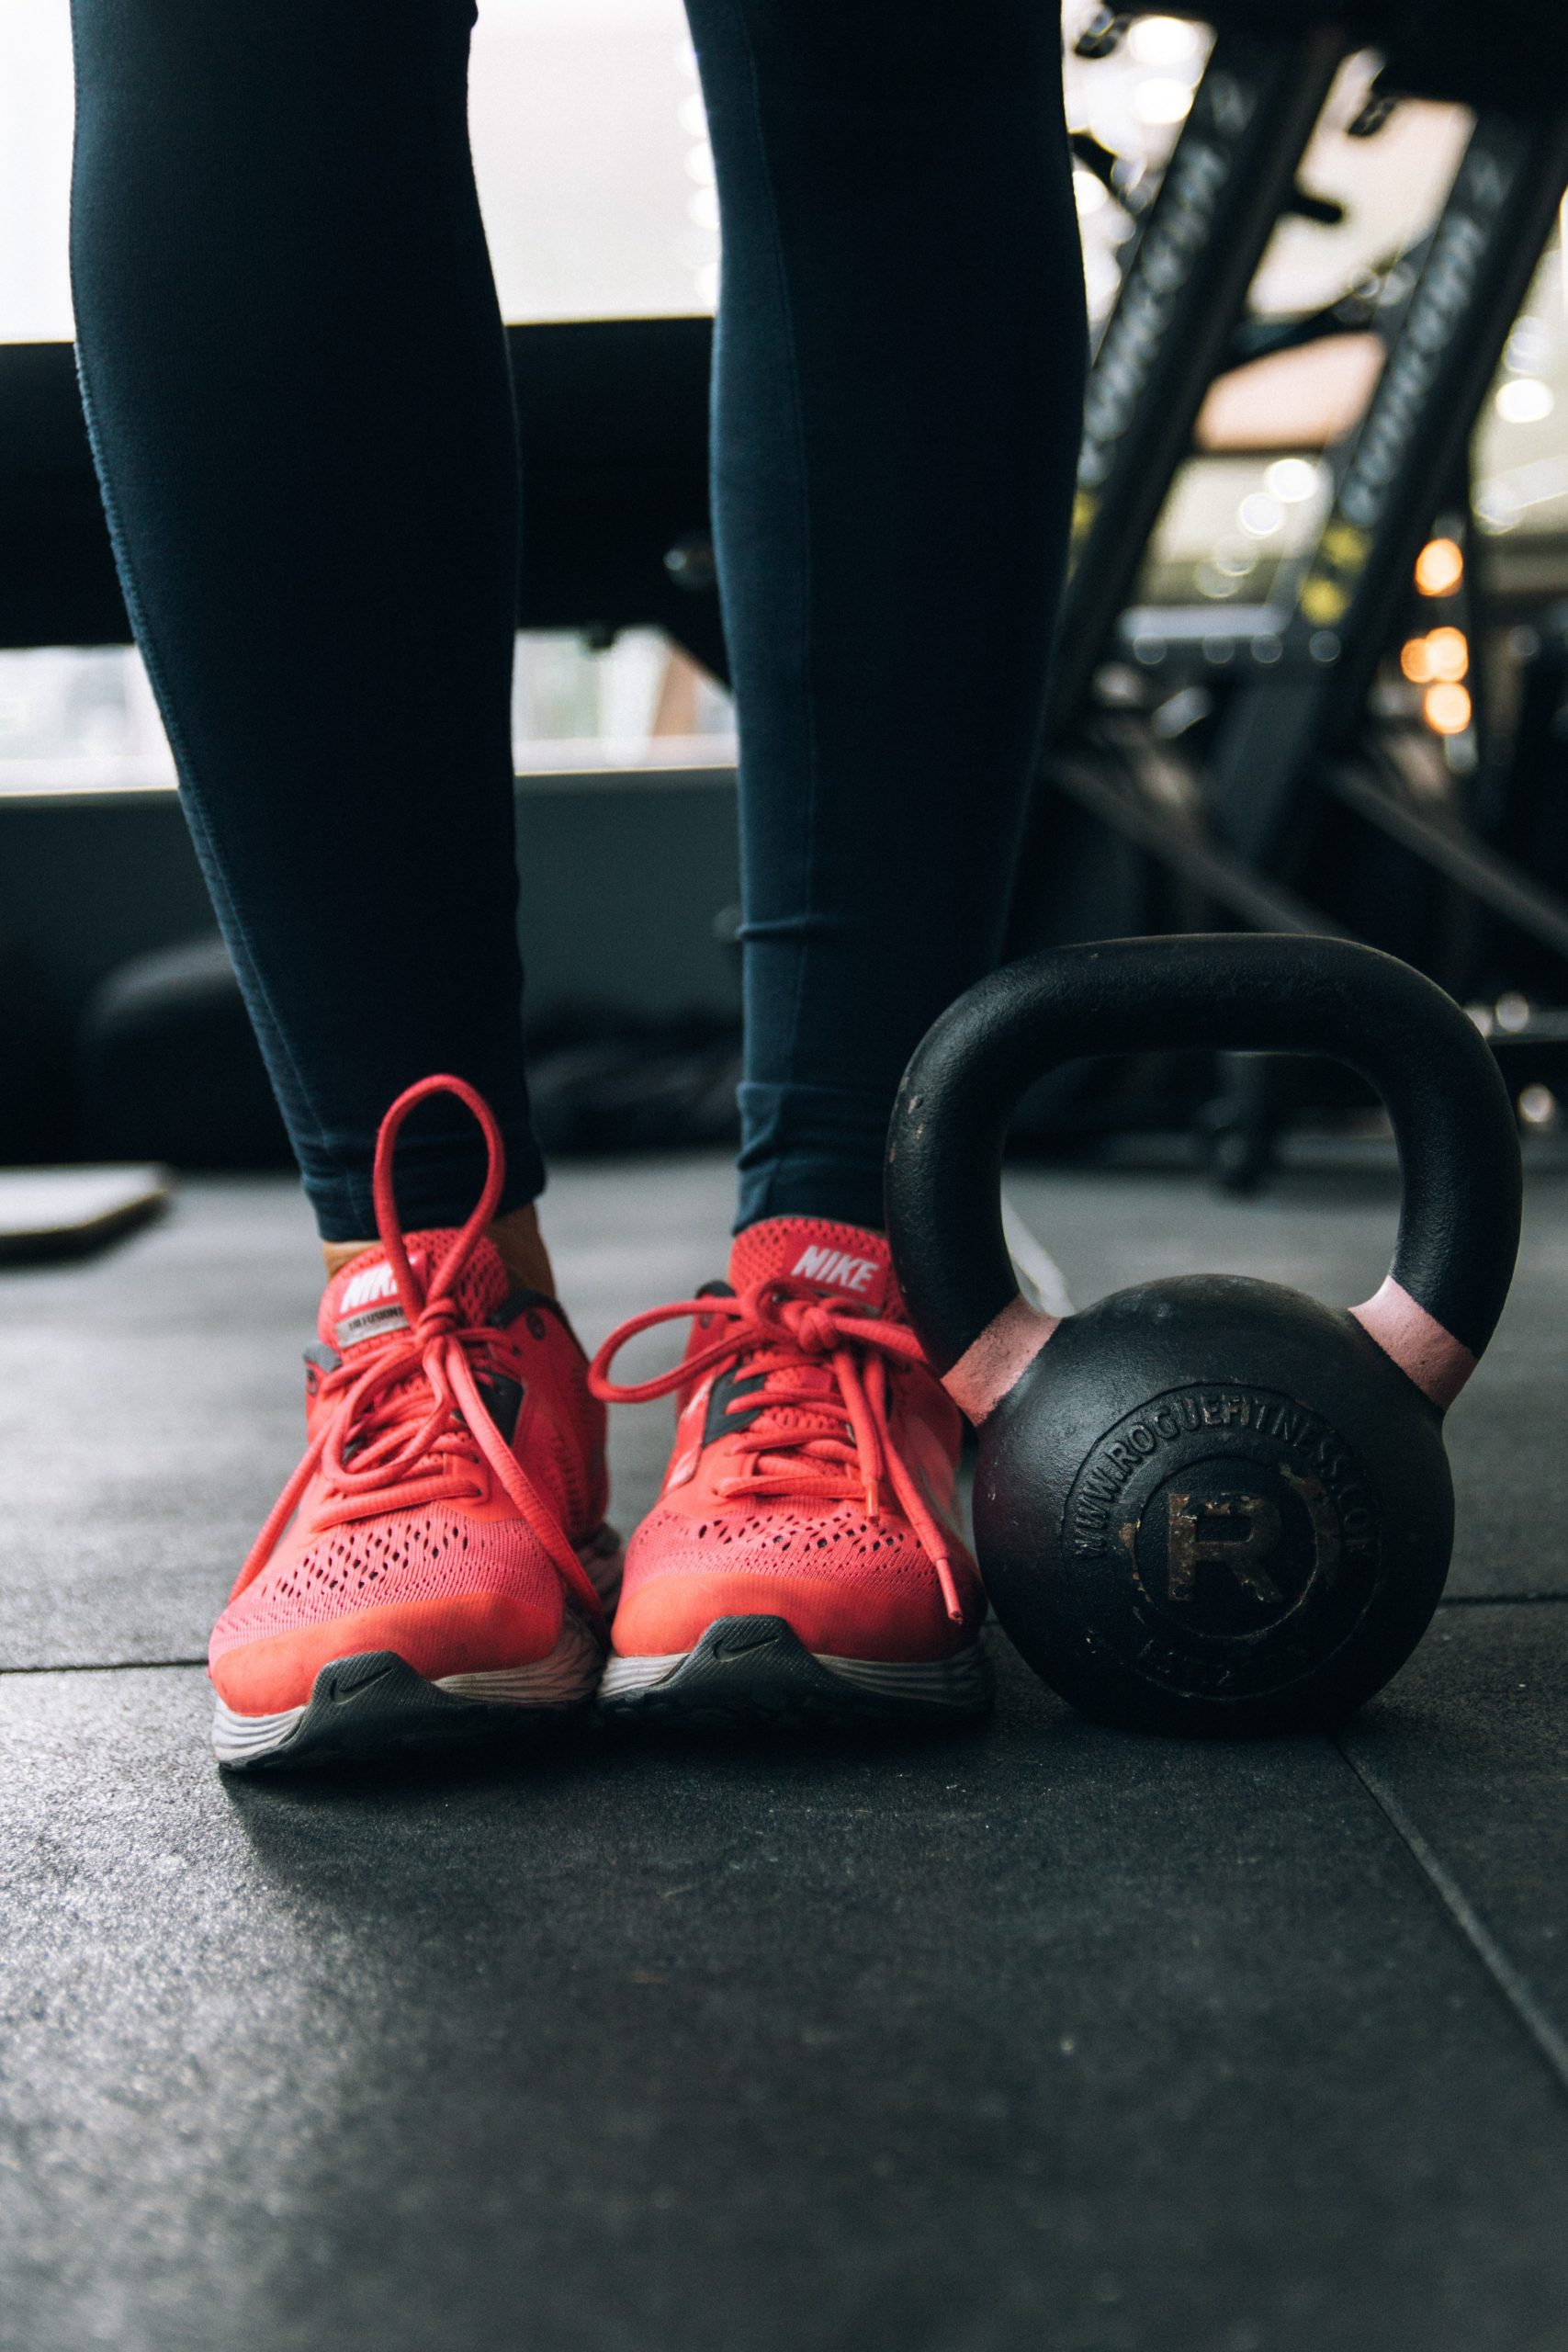 Legs and feet in red tennis shoes with a kettlebell sitting next to them.